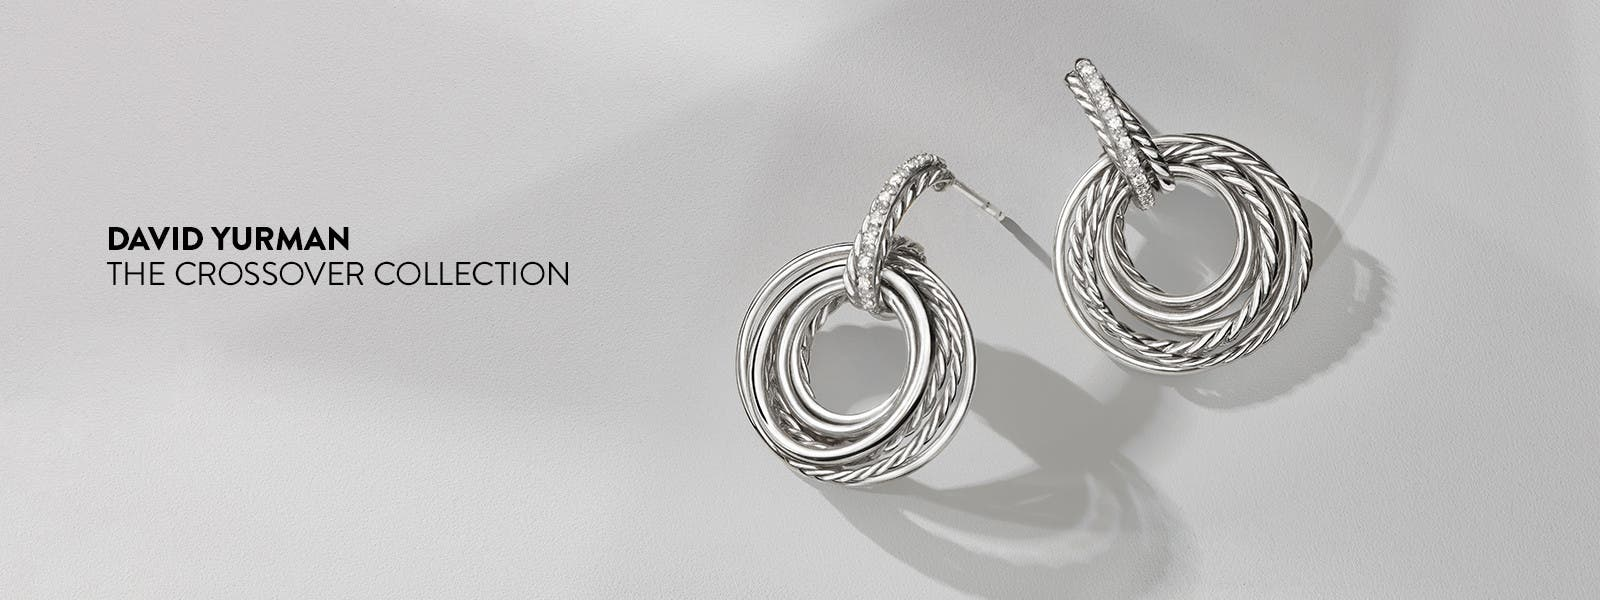 David Yurman: the Crossover Collection.